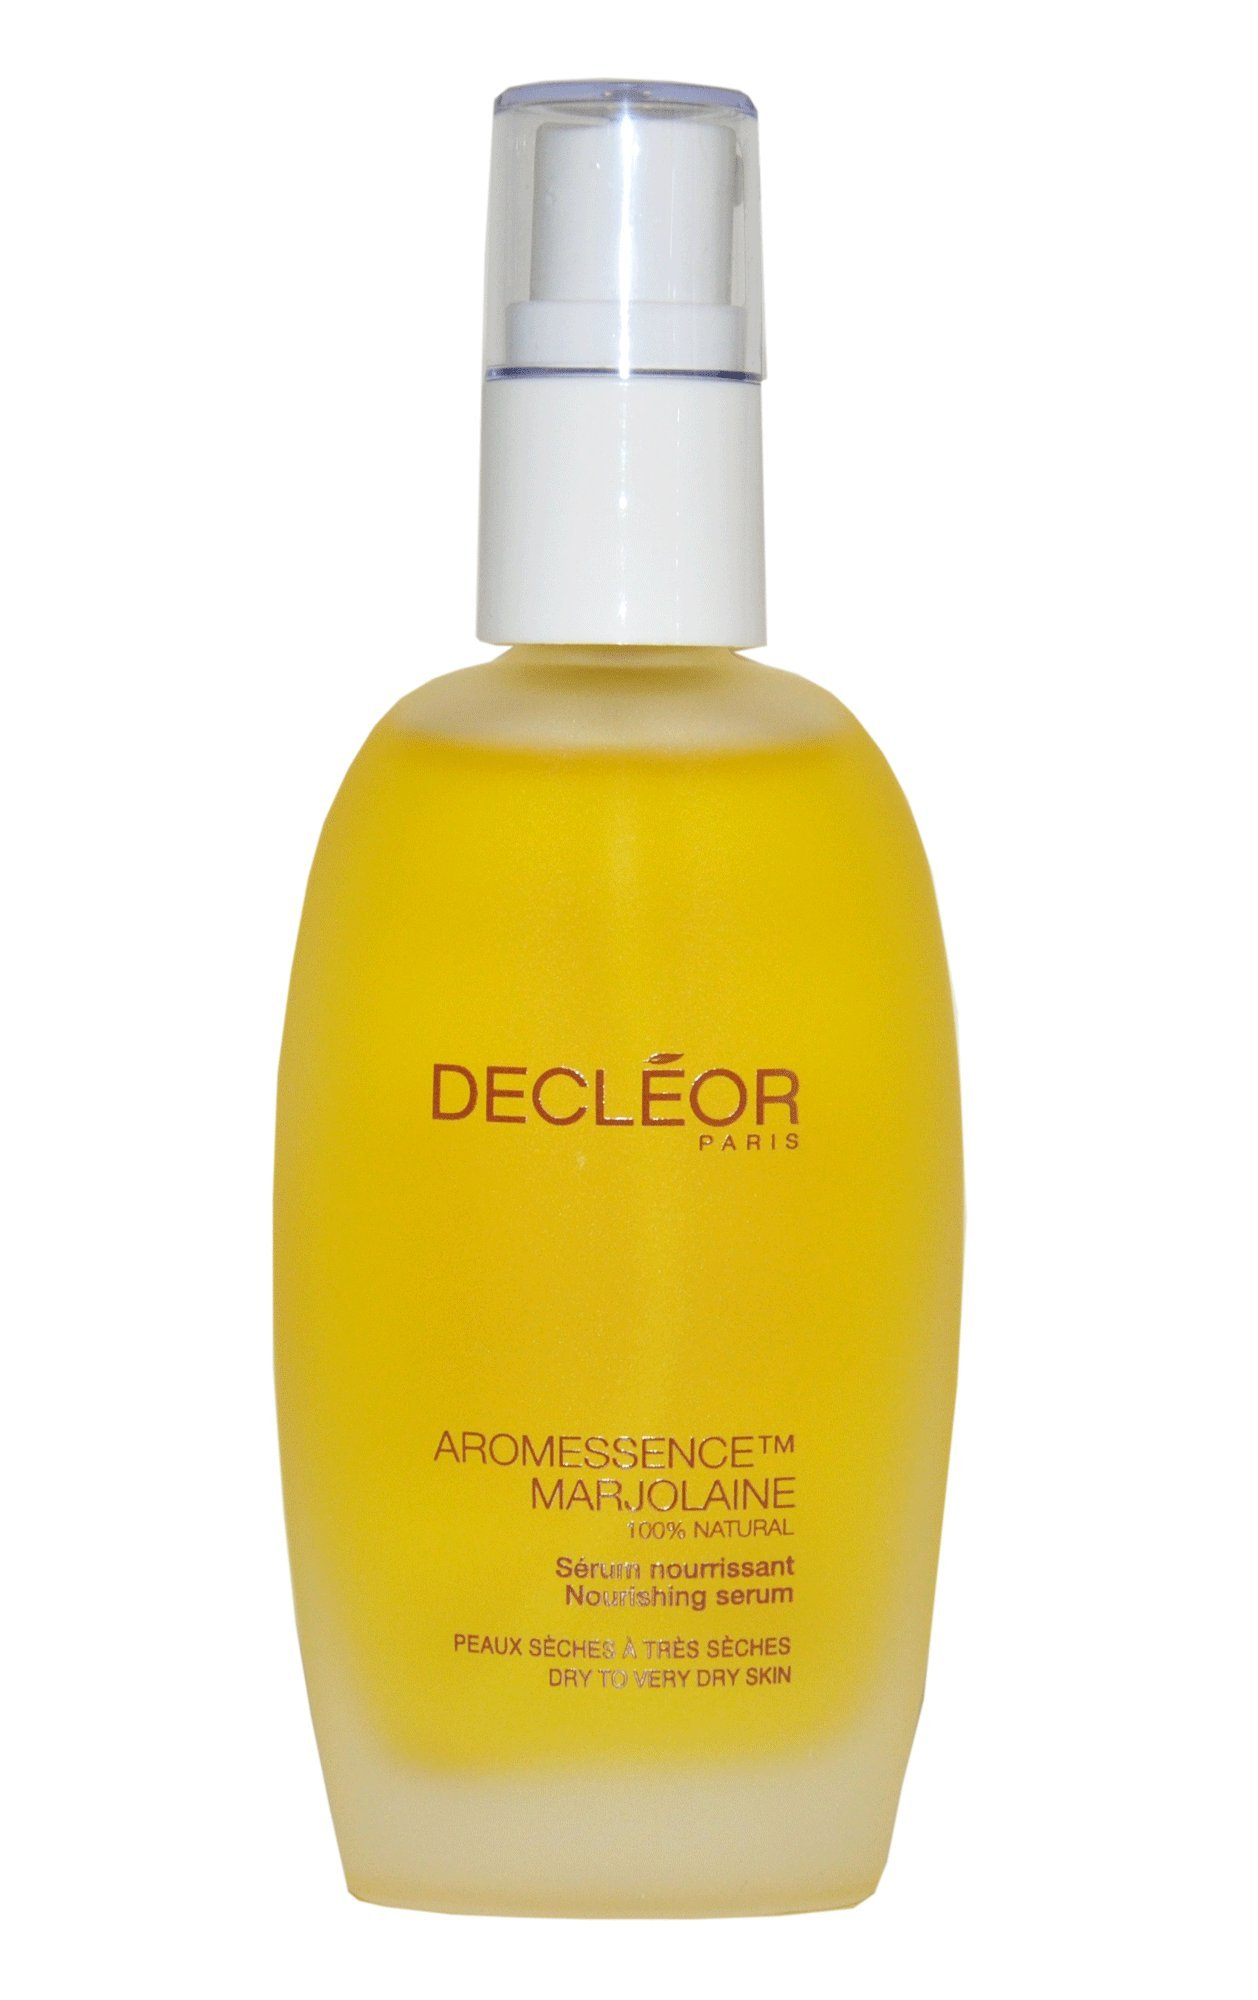 Decleor Aromessence Marjolaine Nourishing Serum 50 ml / 1.69 Fl.oz - SALON SIZE